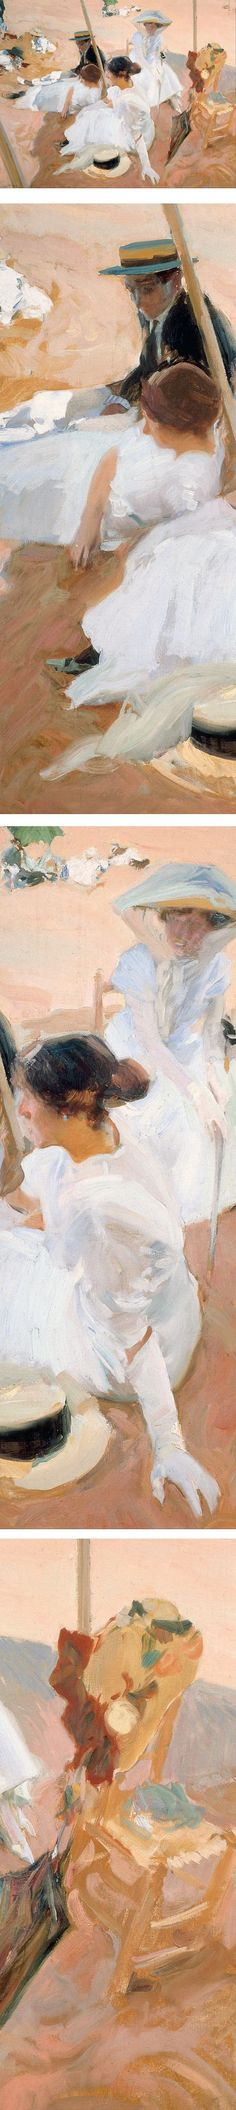 Under the awning, on the Beach at Zarauz, Joaquin Sorolla y Bastida